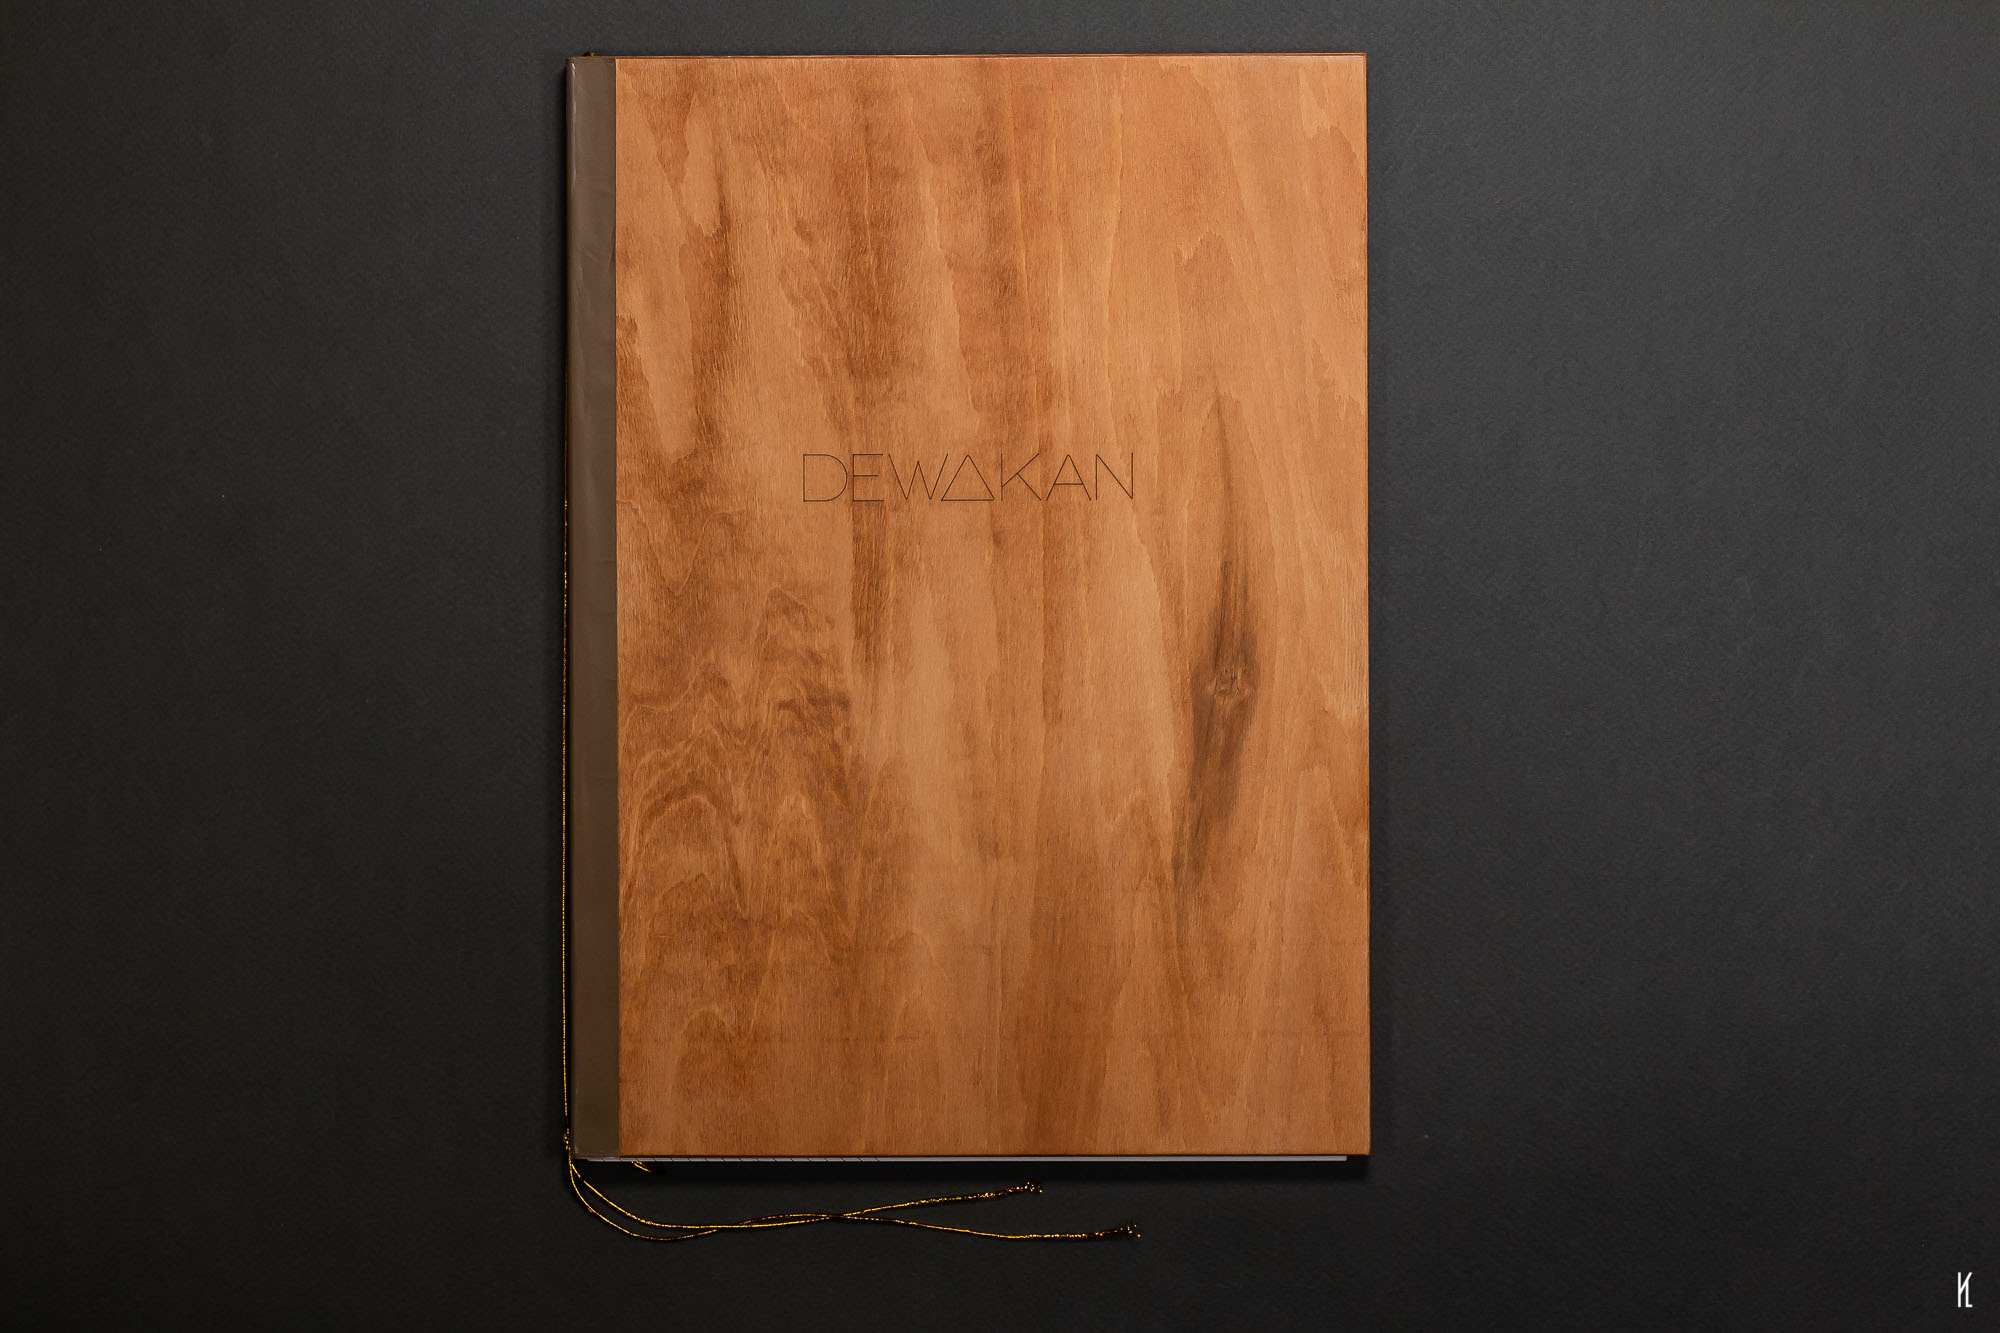 Identity, Art Direction and Menu Design for Dewakan Restaurant